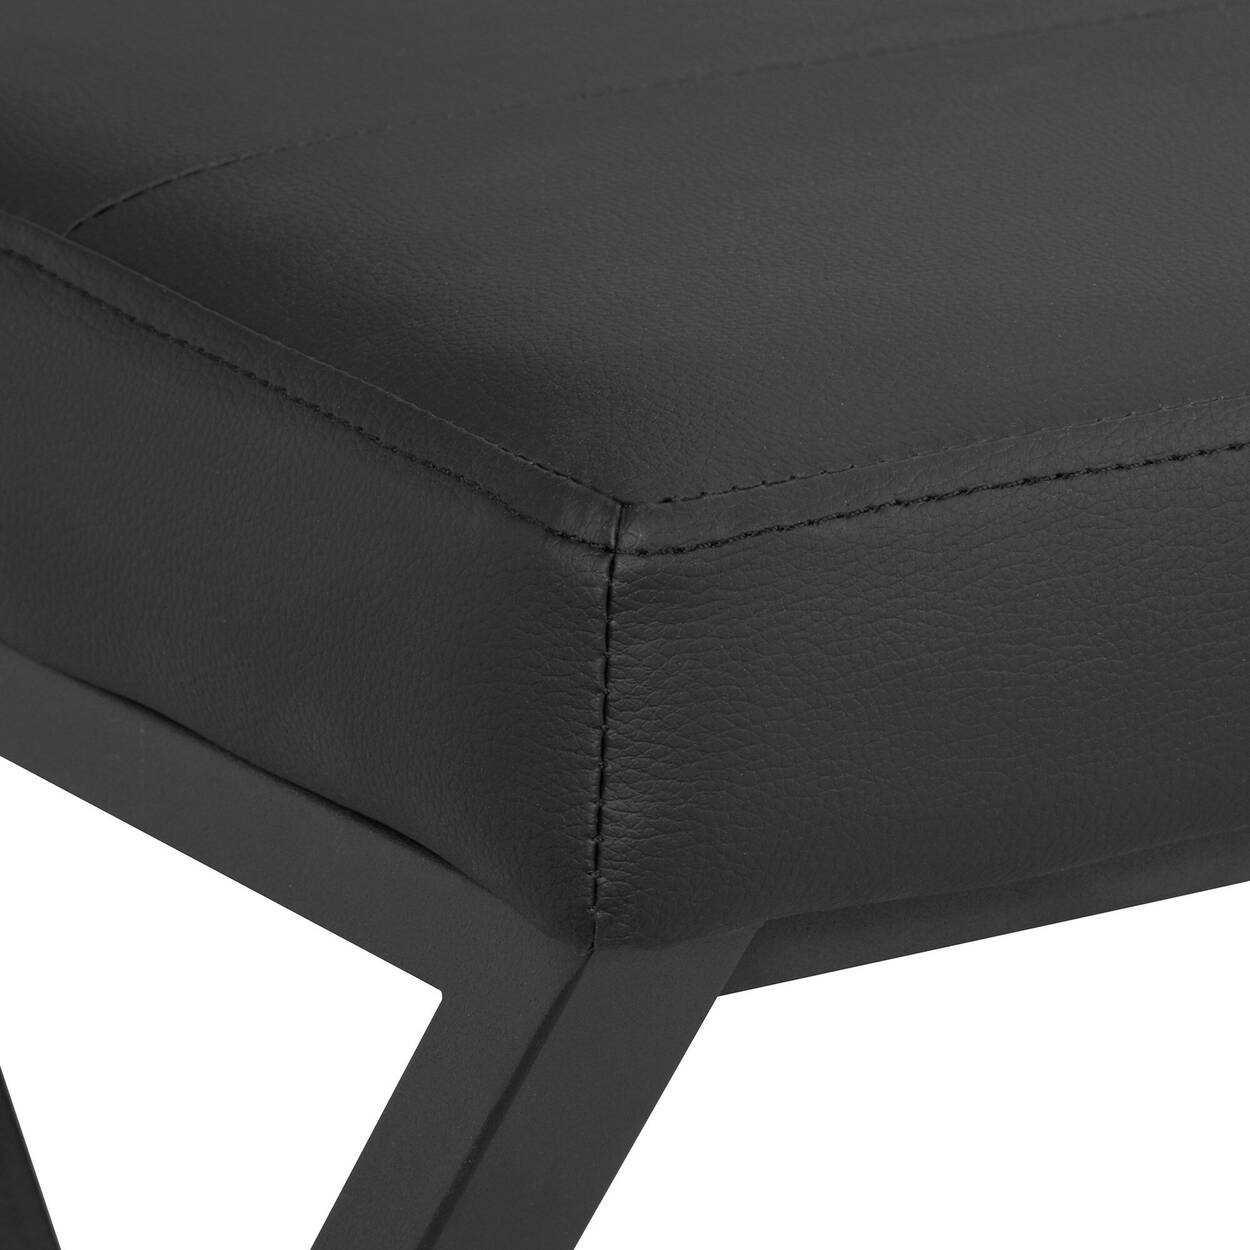 Textured Faux Leather Bench With Metal Base